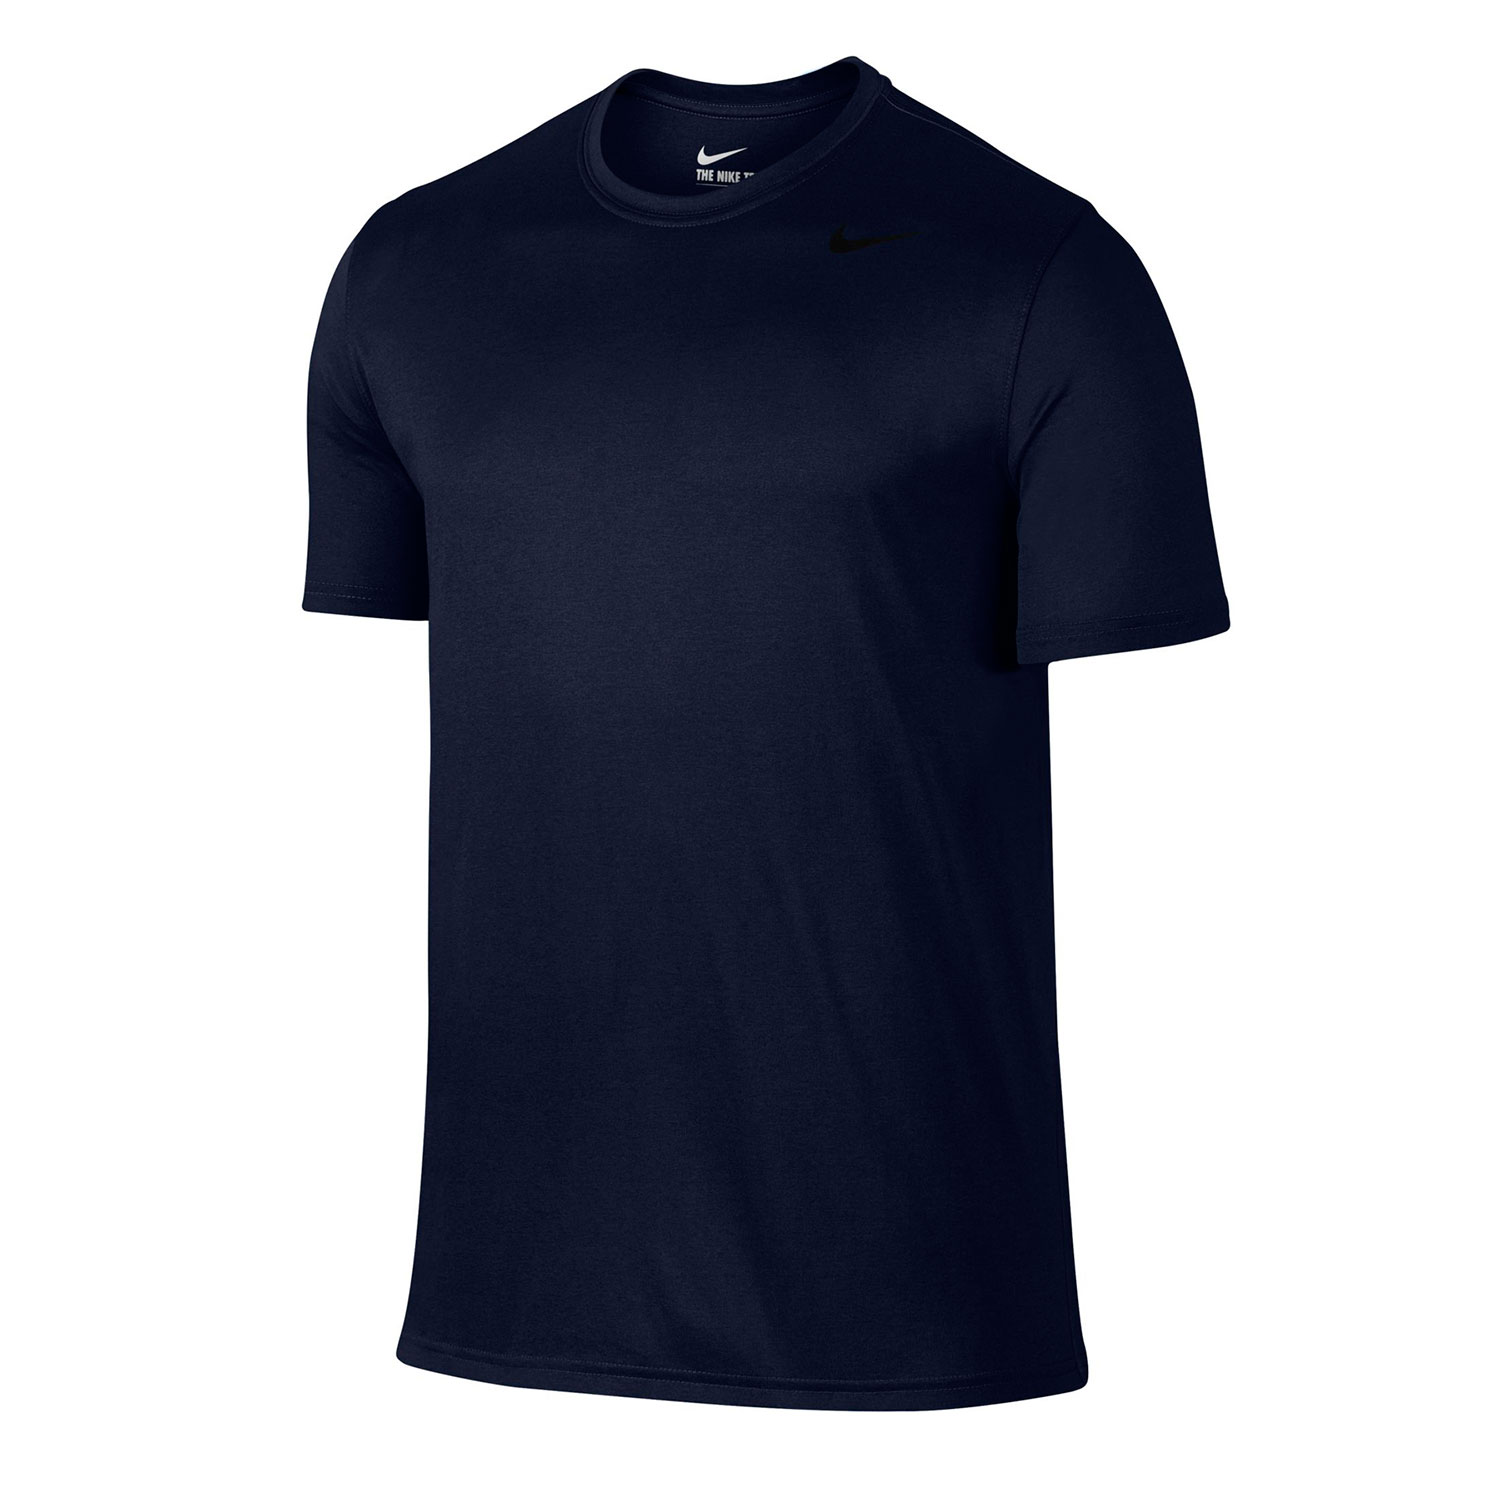 Nike Men's Legend 2.0 Short Sleeve T Shirt